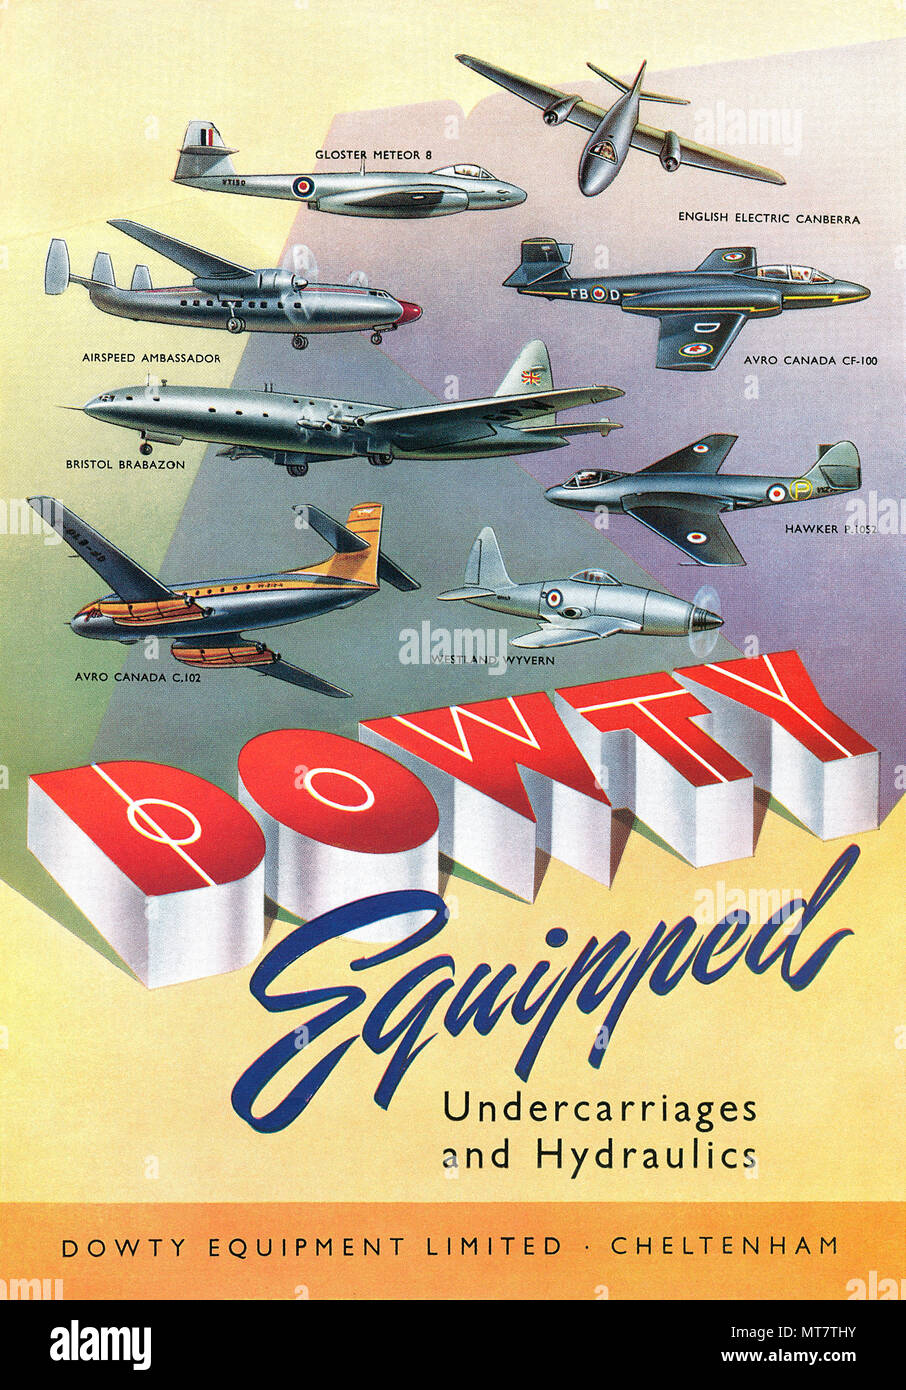 1950 British advertisement for Dowty Equipment Limited, manufacturers of undercarriages and hydraulics for the aviation industry. - Stock Image